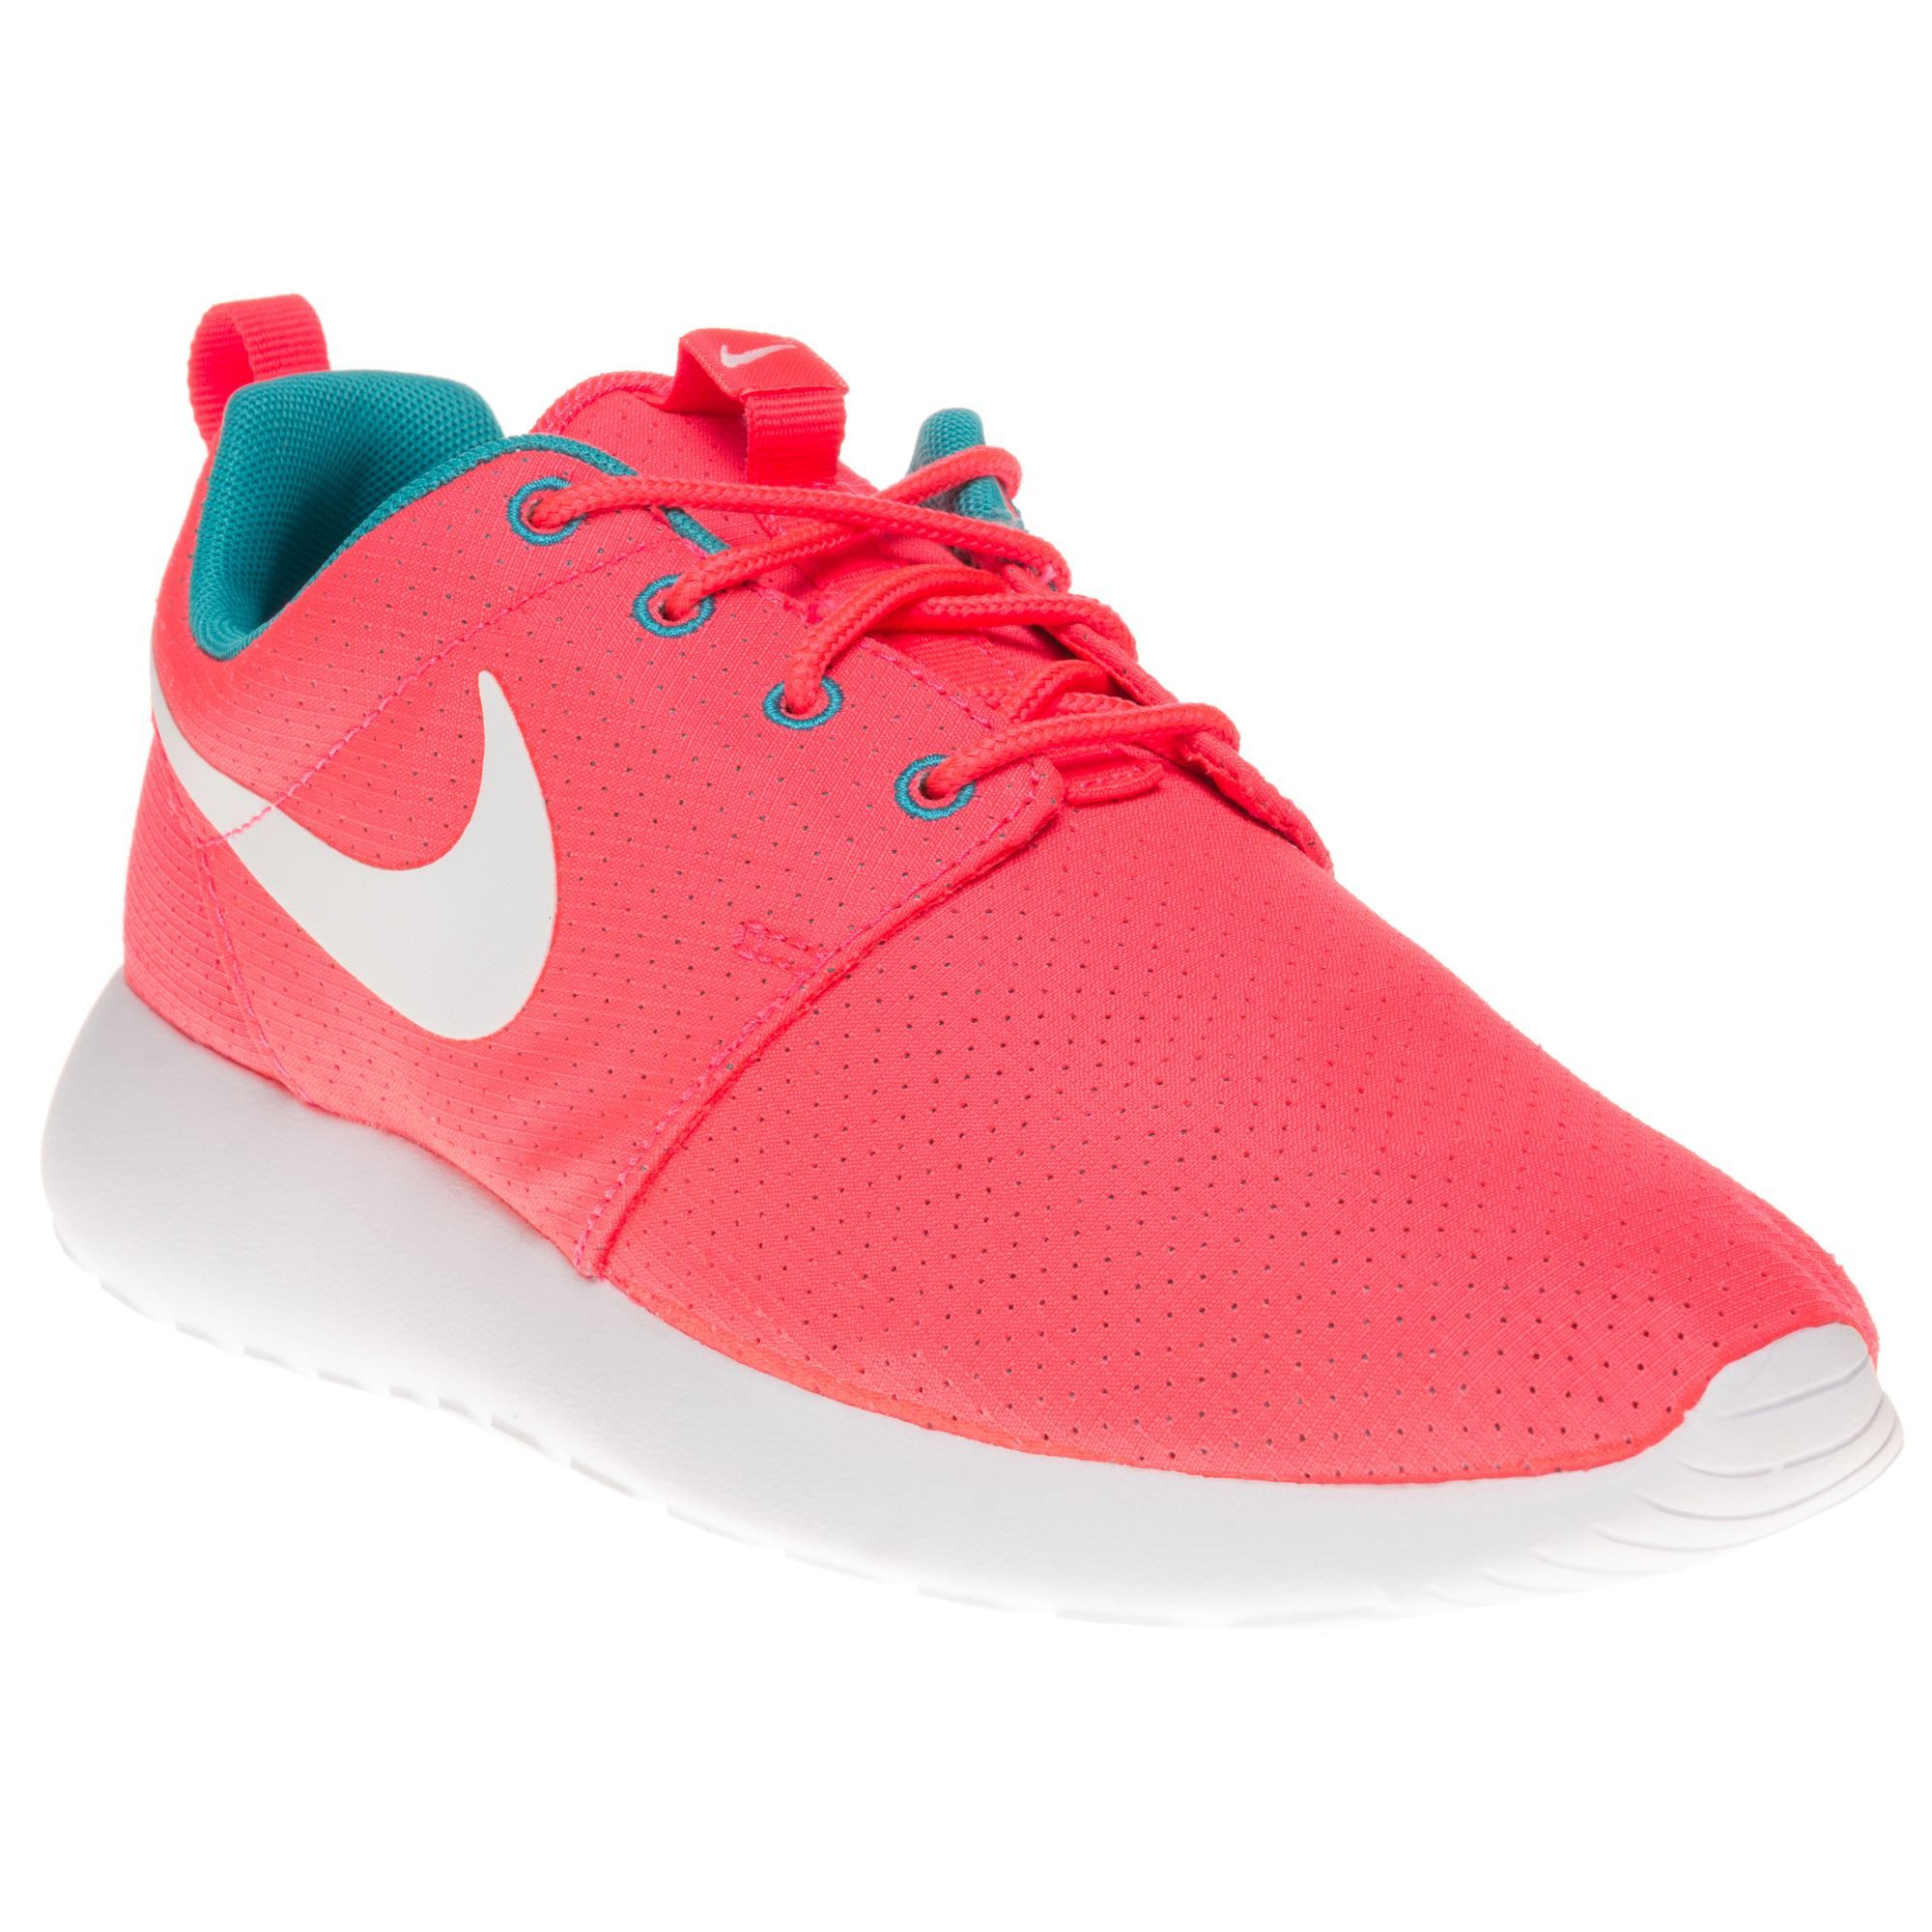 0b752563824 Nike Roshe Run Trainers - Women - SOLETRADER